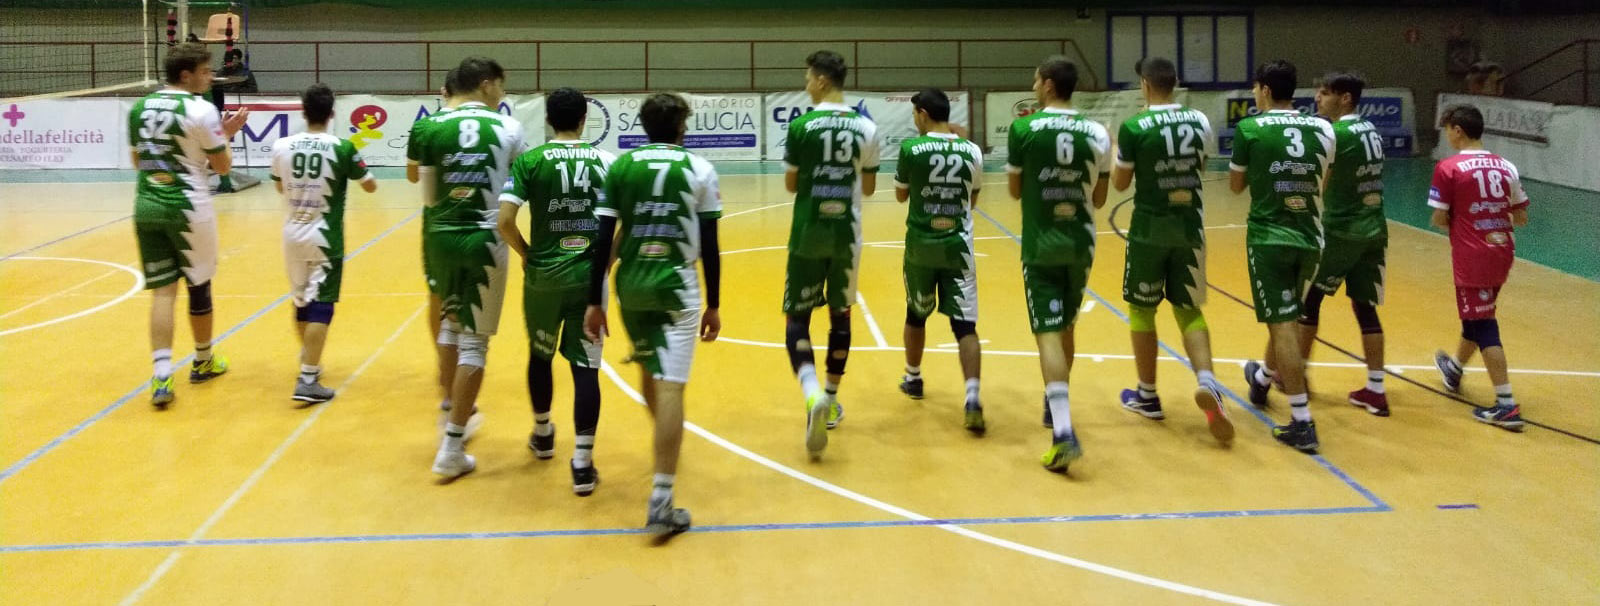 Settima vittoria per la Showy Boys under 18